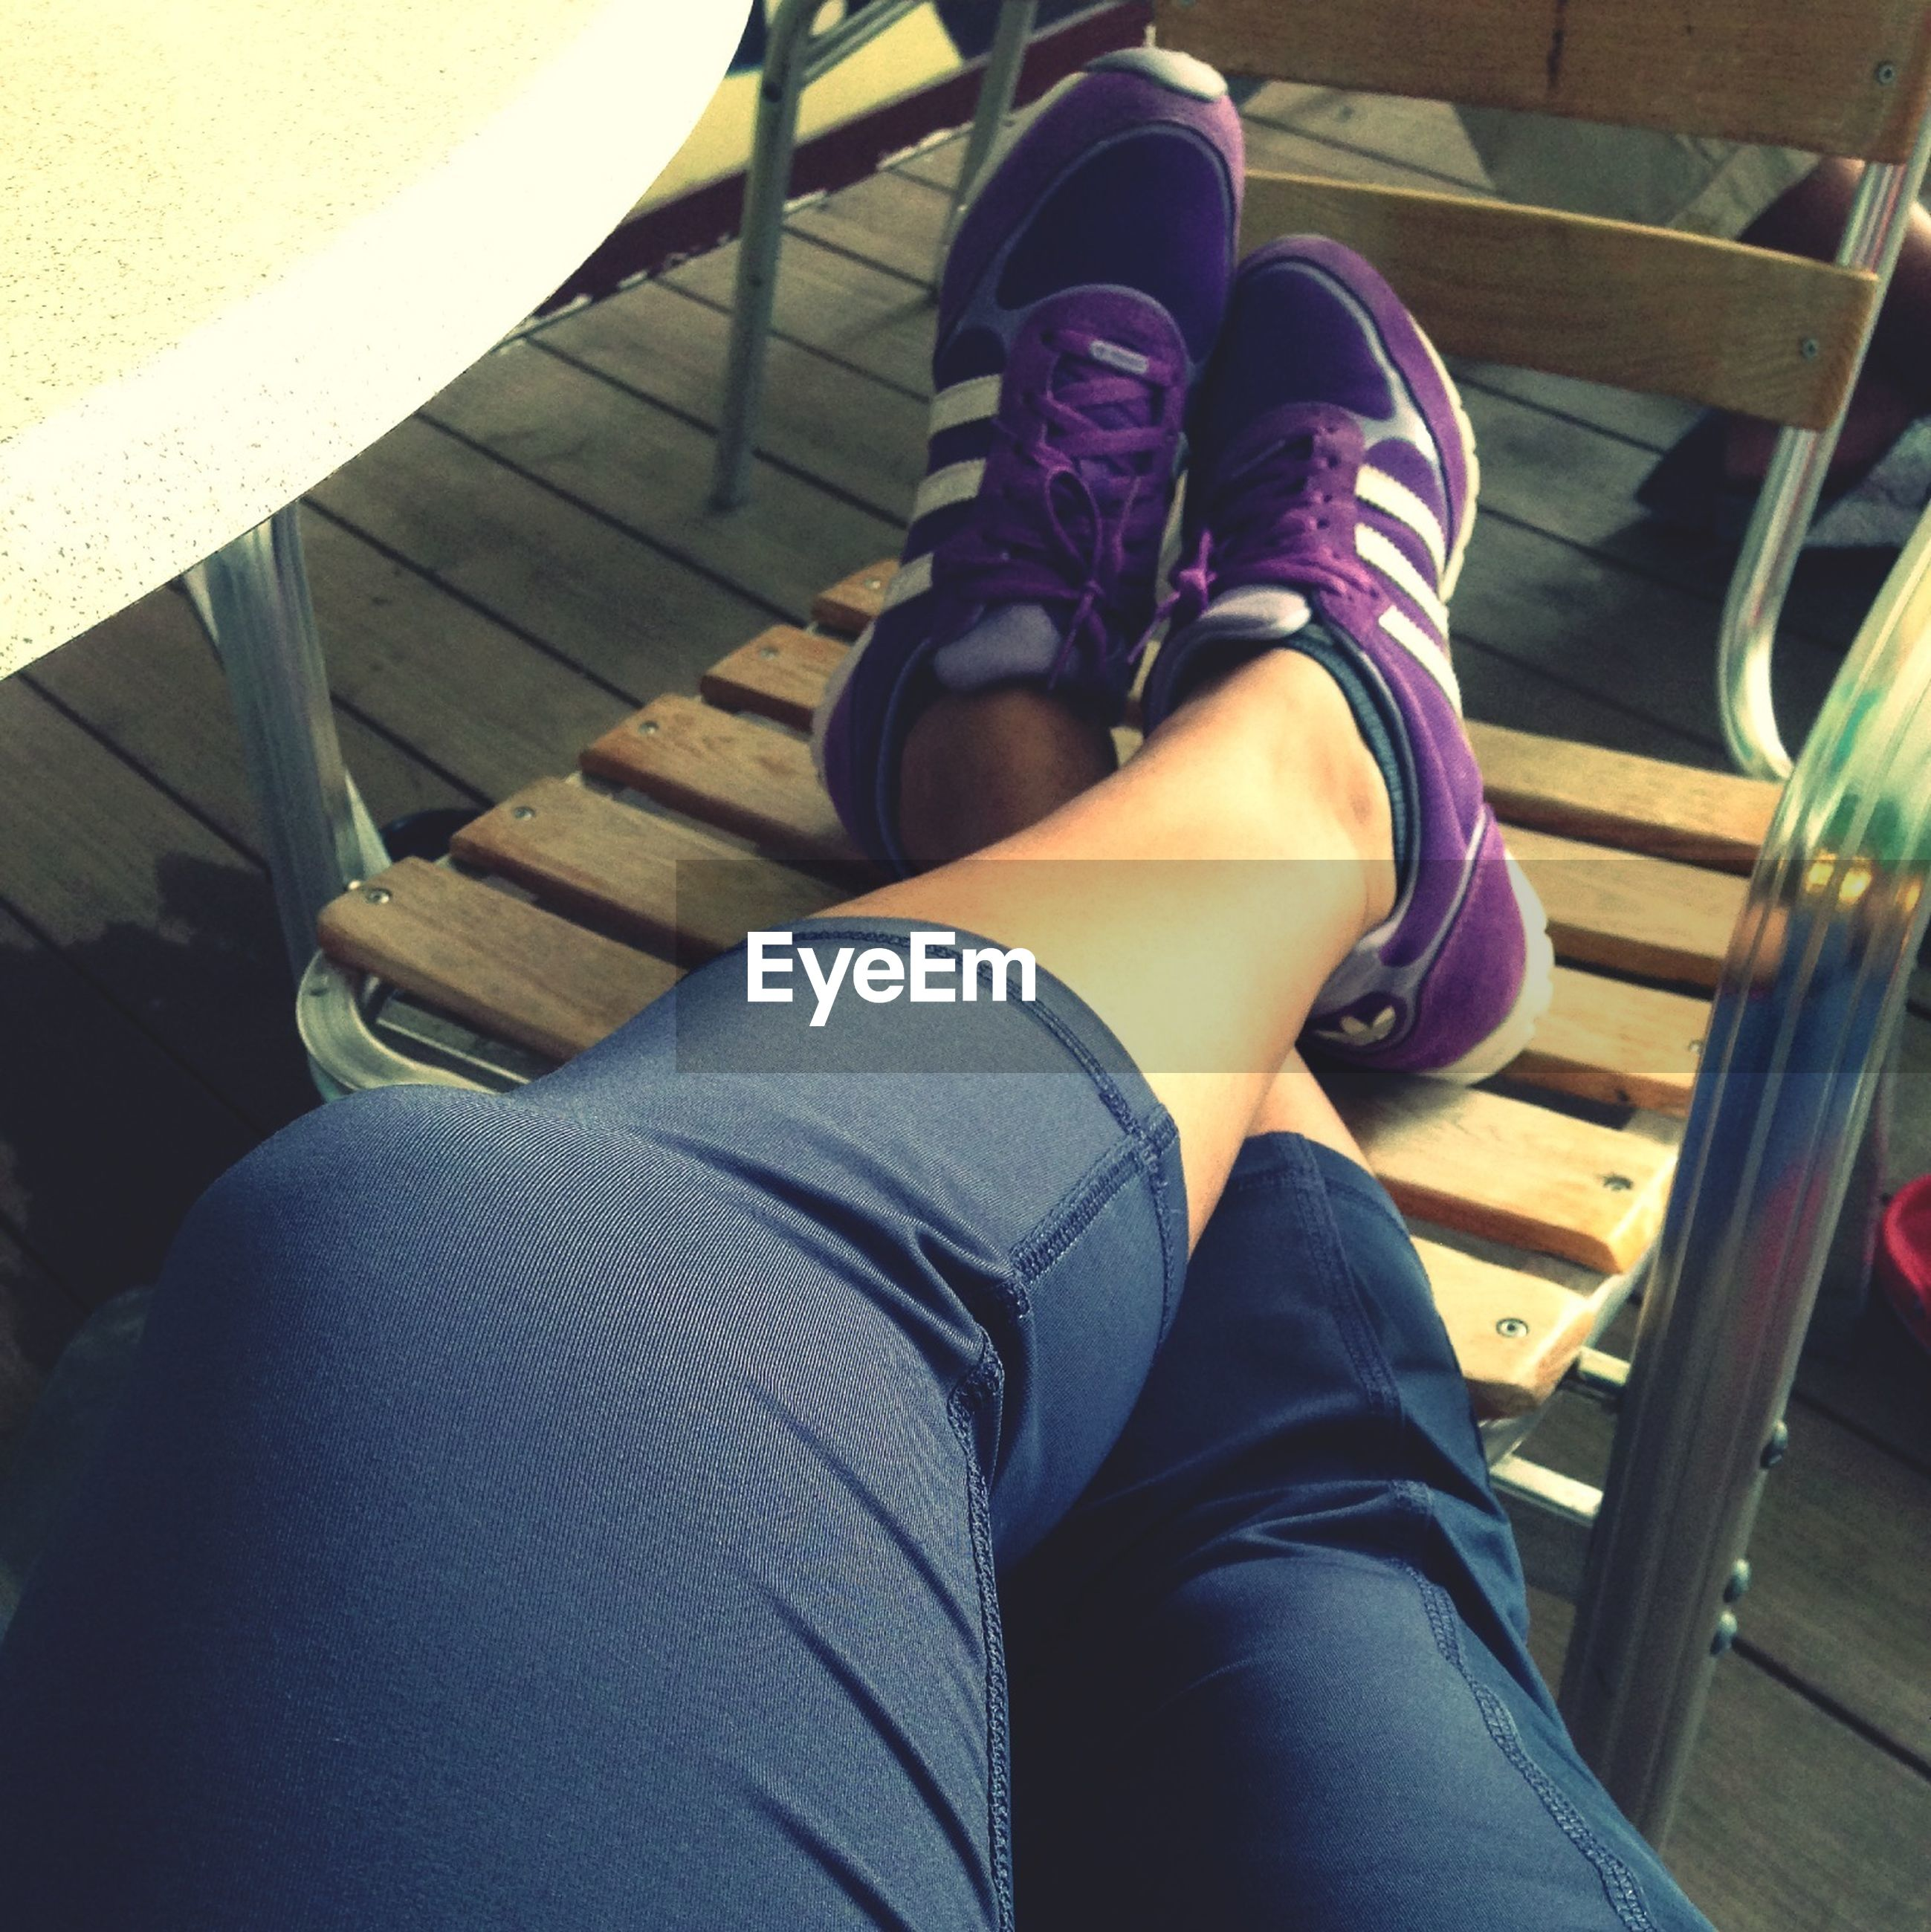 low section, person, shoe, jeans, indoors, personal perspective, lifestyles, human foot, standing, sitting, footwear, casual clothing, men, relaxation, high angle view, leisure activity, legs crossed at ankle